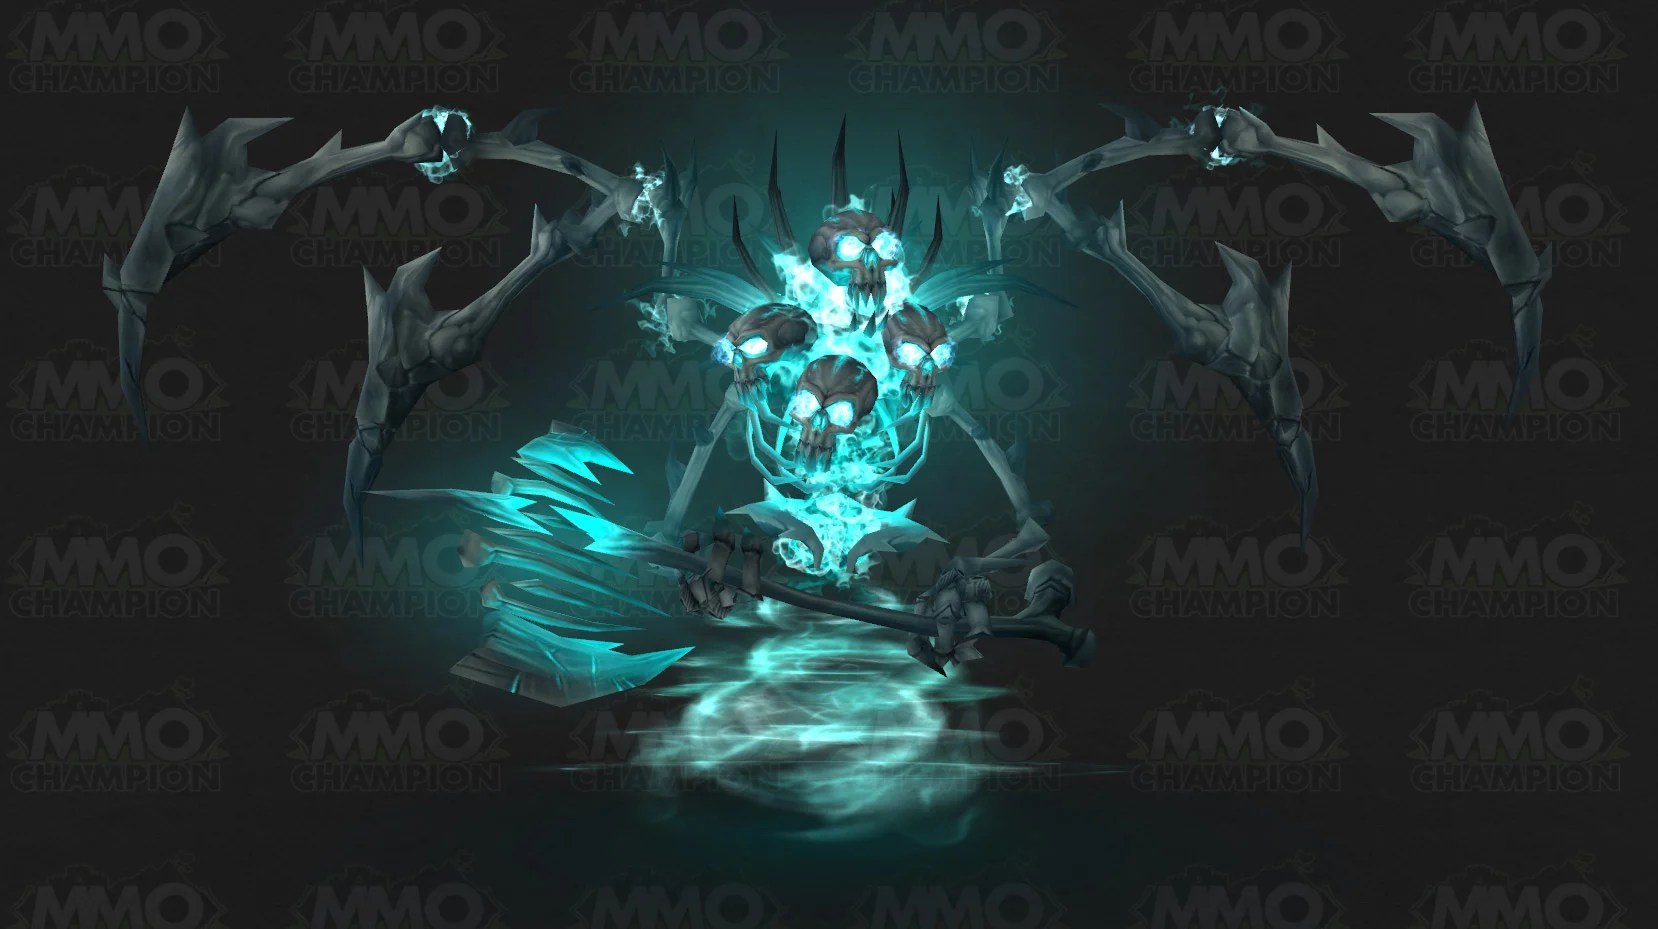 Fall Of The Lich King Wallpaper Mmo Champion Lord Marrowgar